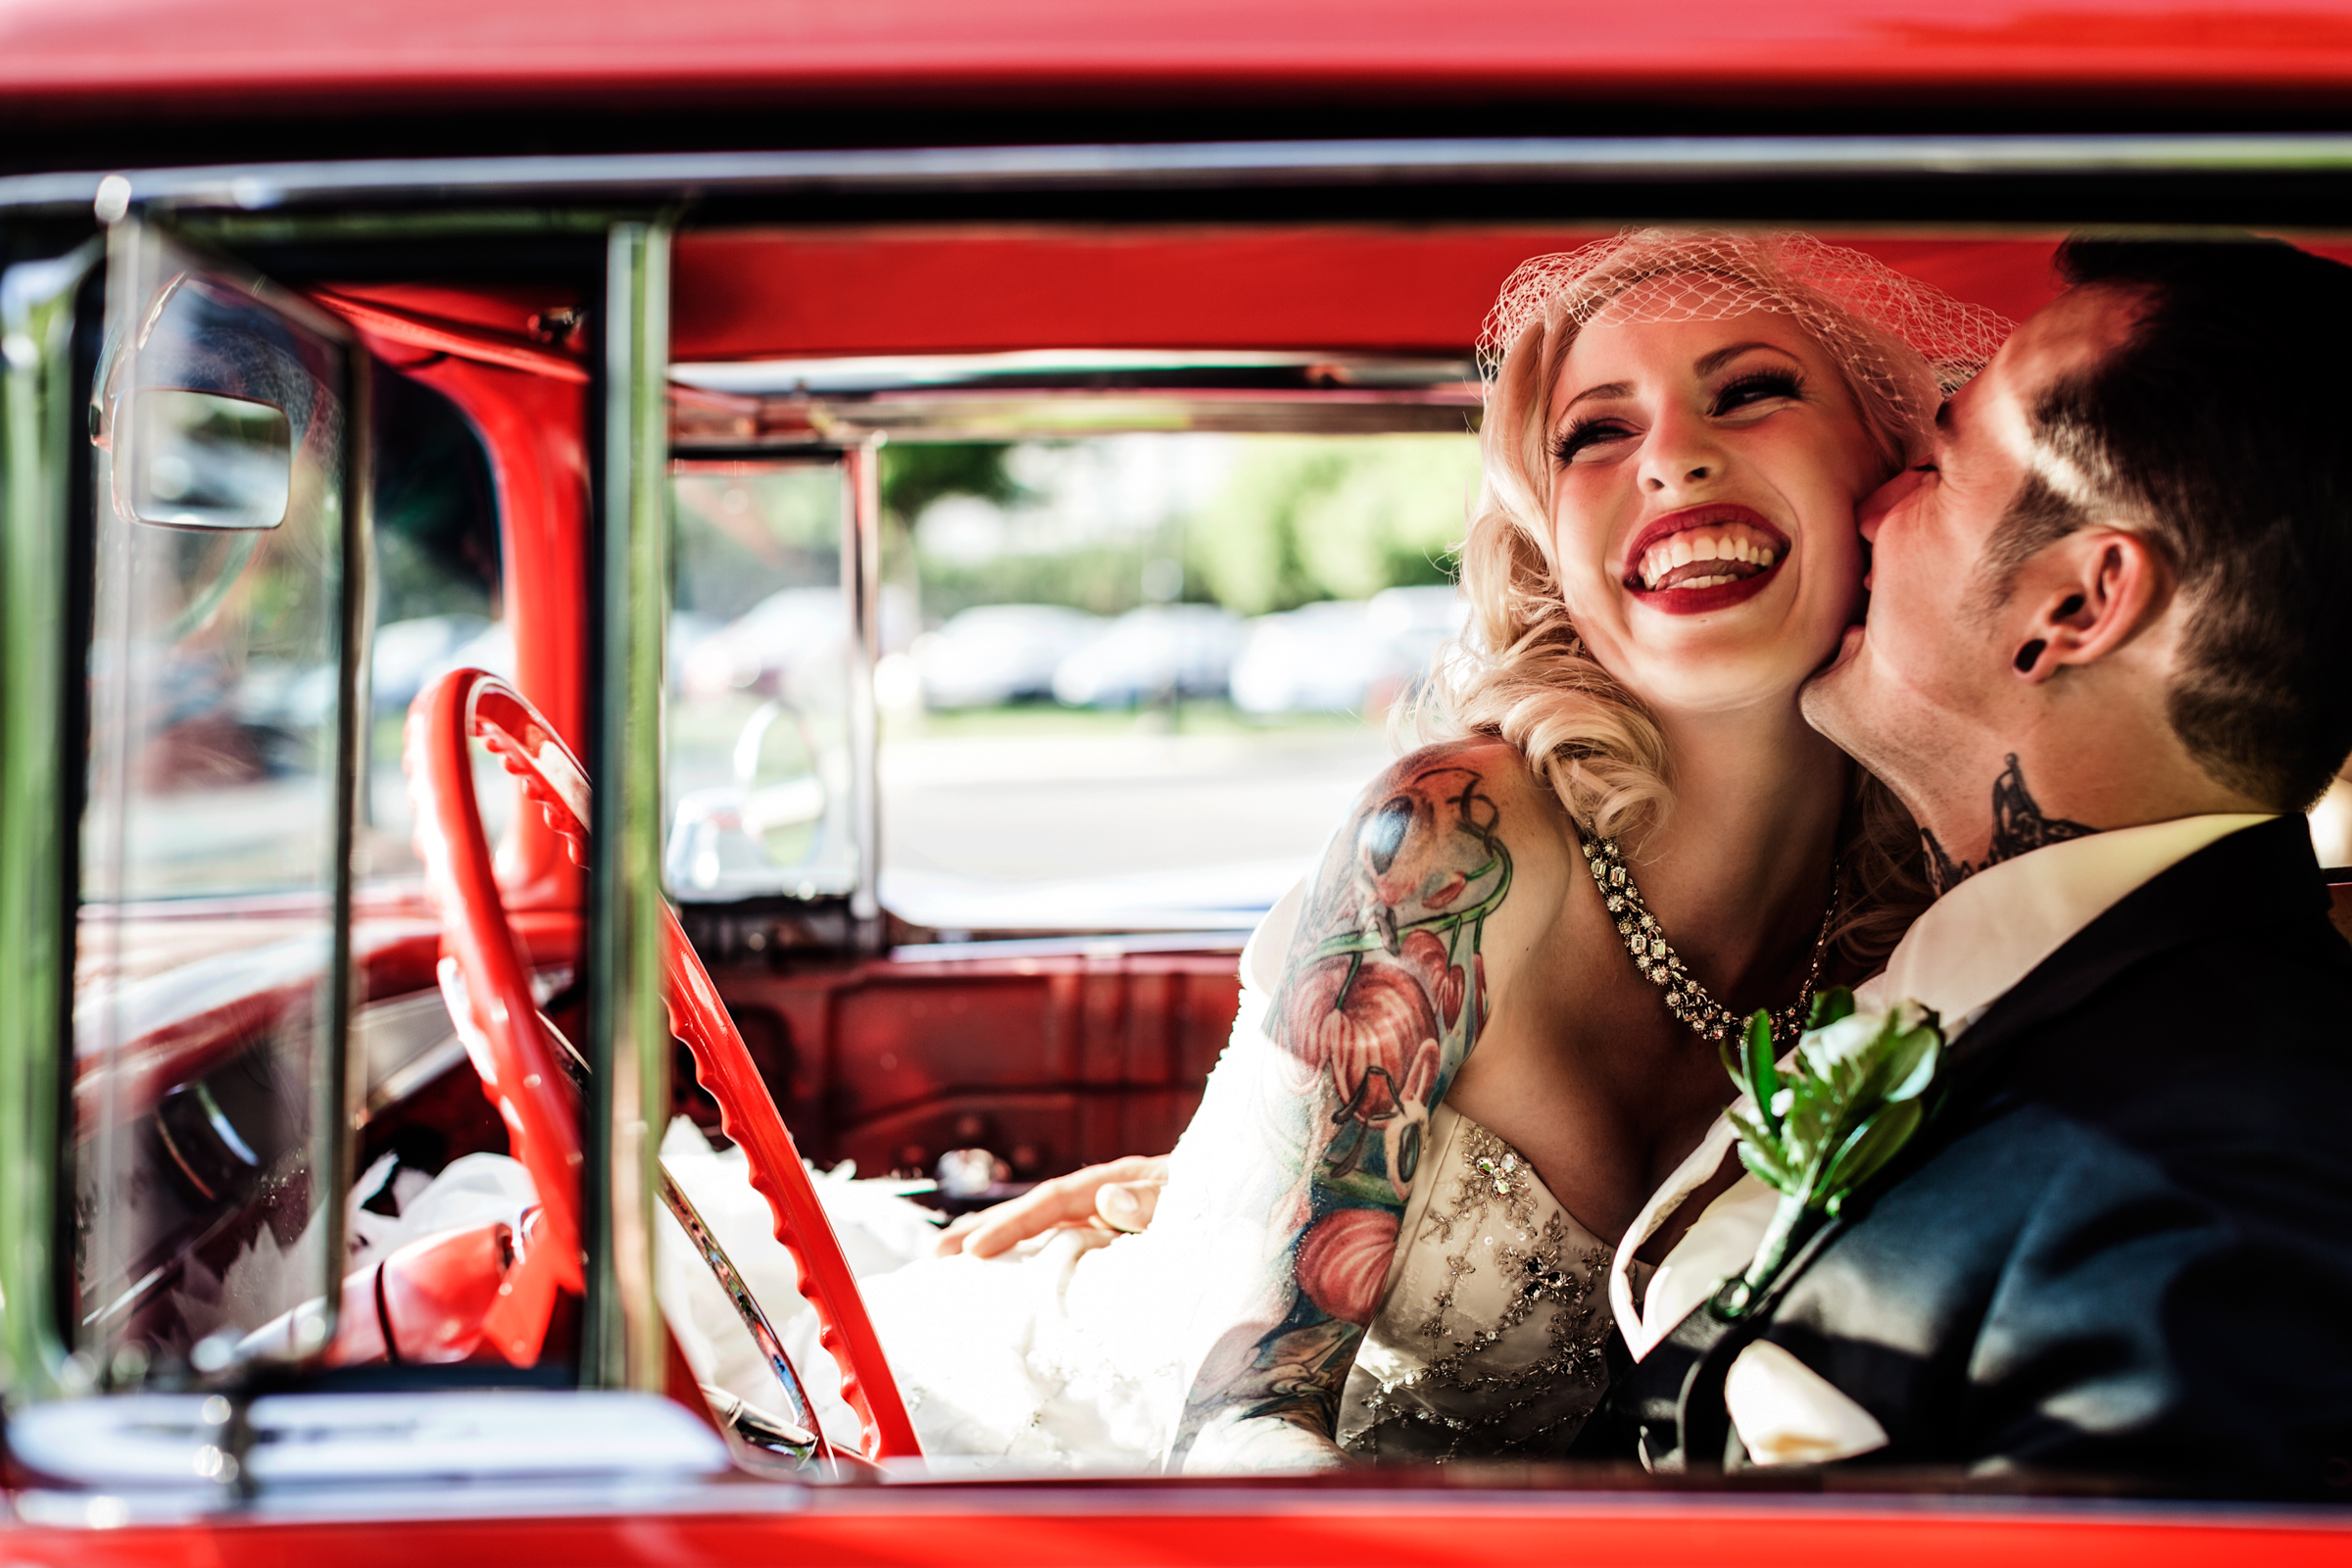 Tattoed bride laughing portrait - best wedding photo of the decade by JAGstudios